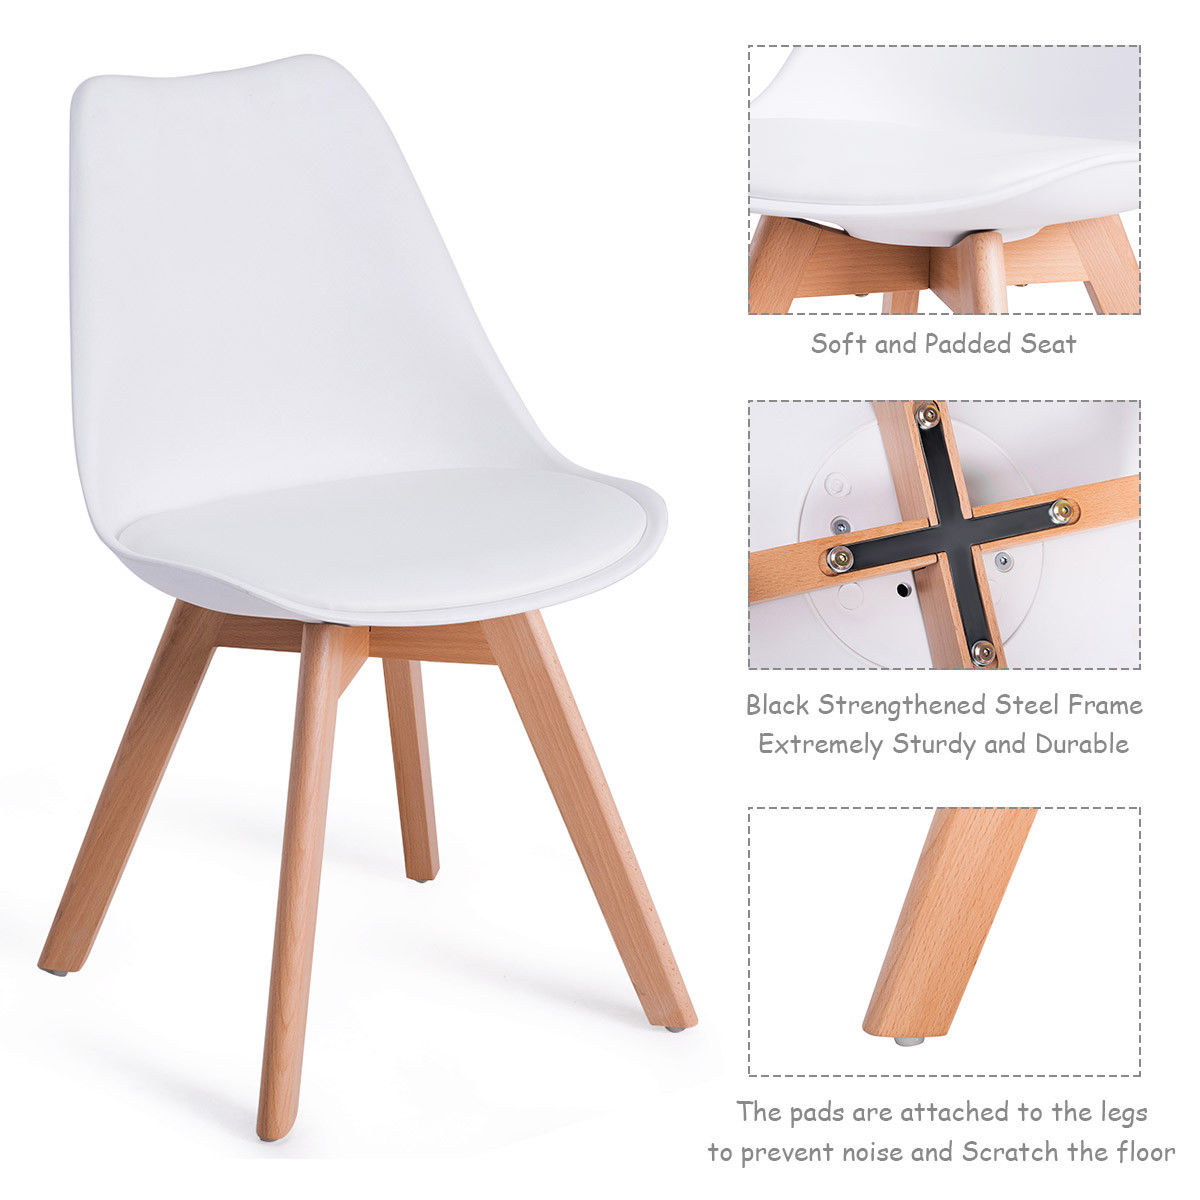 Giantex Set Of 4pcs Mid Century Modern Style Dining Side Chair Upholstered Seat Wood Legs White Chairs Hw57081 In From Furniture On